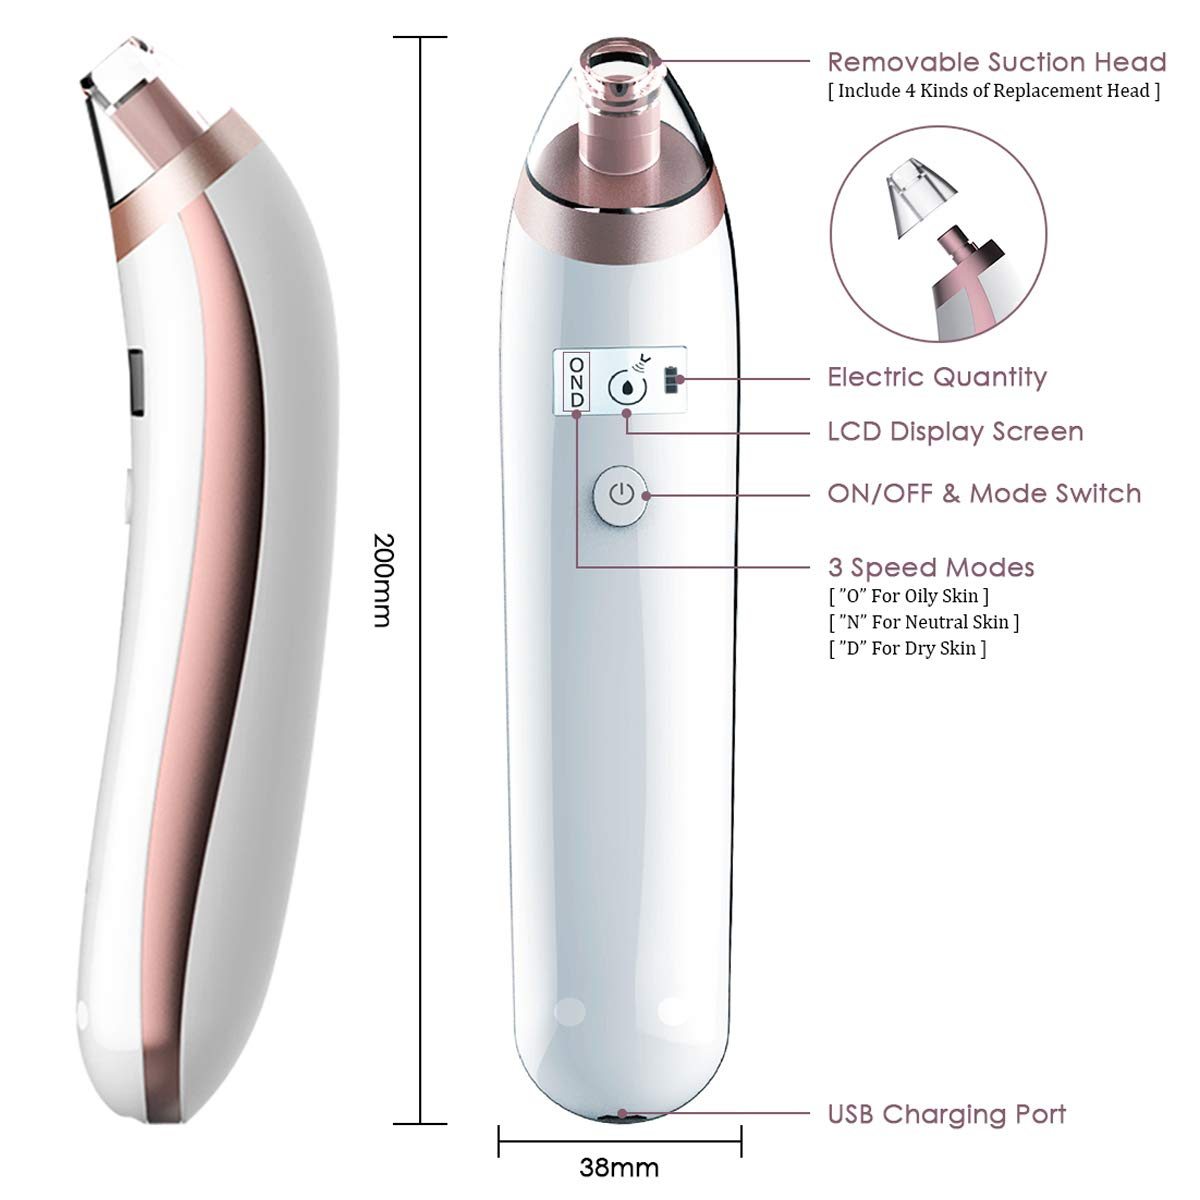 Blackhead Remover USB Rechargeable Electric Facial Pore Cleanser with LED Display, Electric Acne Comedone Extractor Kit Facial Pore Extractor for Acne Grease Dirt Dead skin (White)